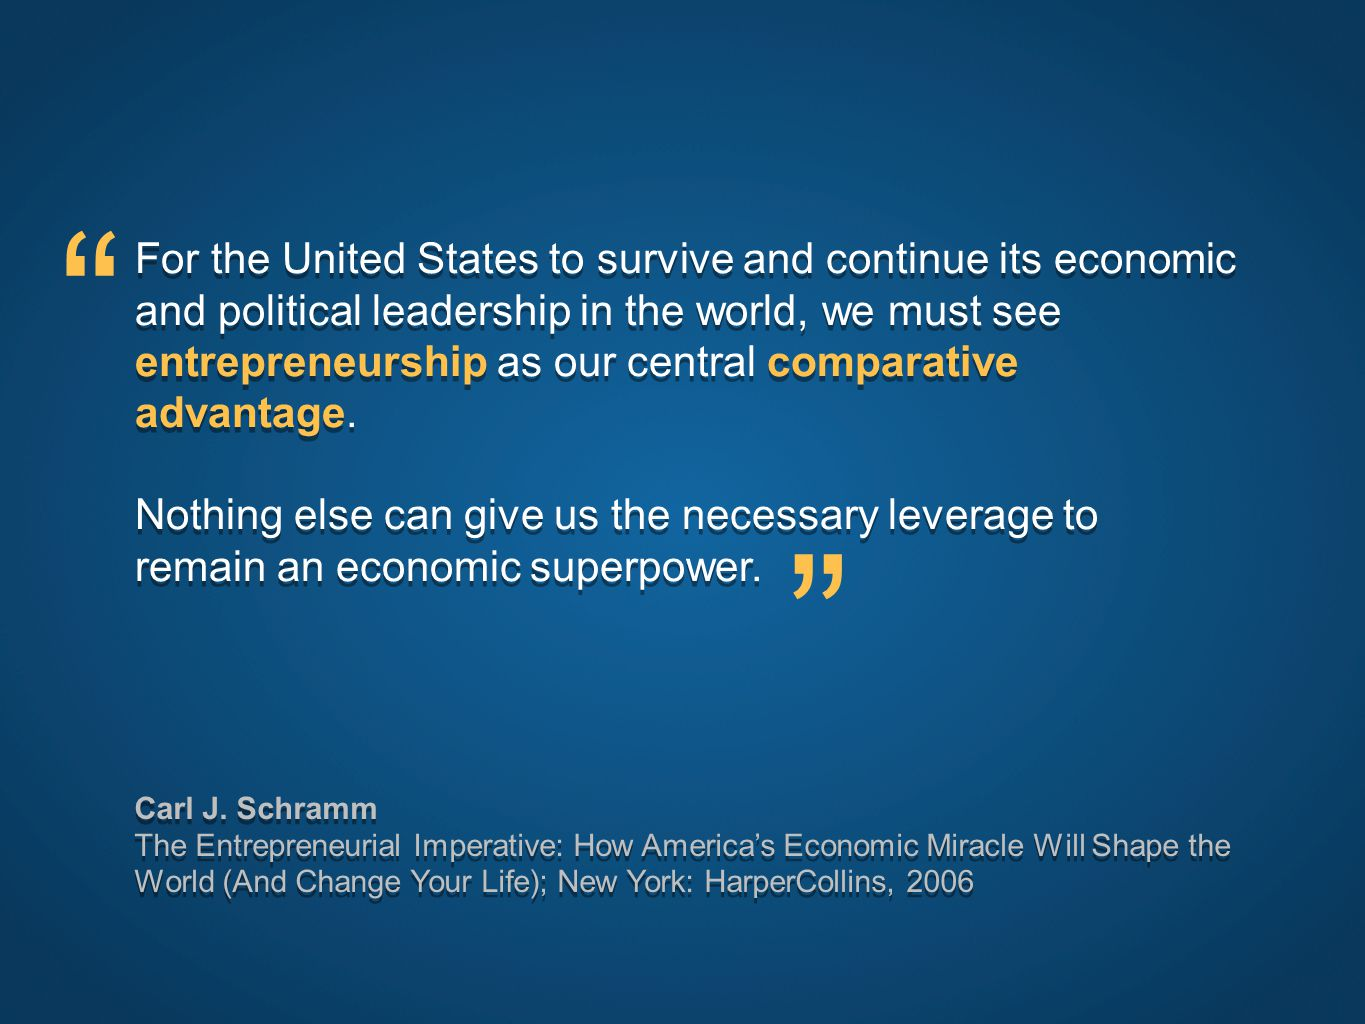 For the United States to survive and continue its economic and political leadership in the world, we must see entrepreneurship as our central comparative advantage.